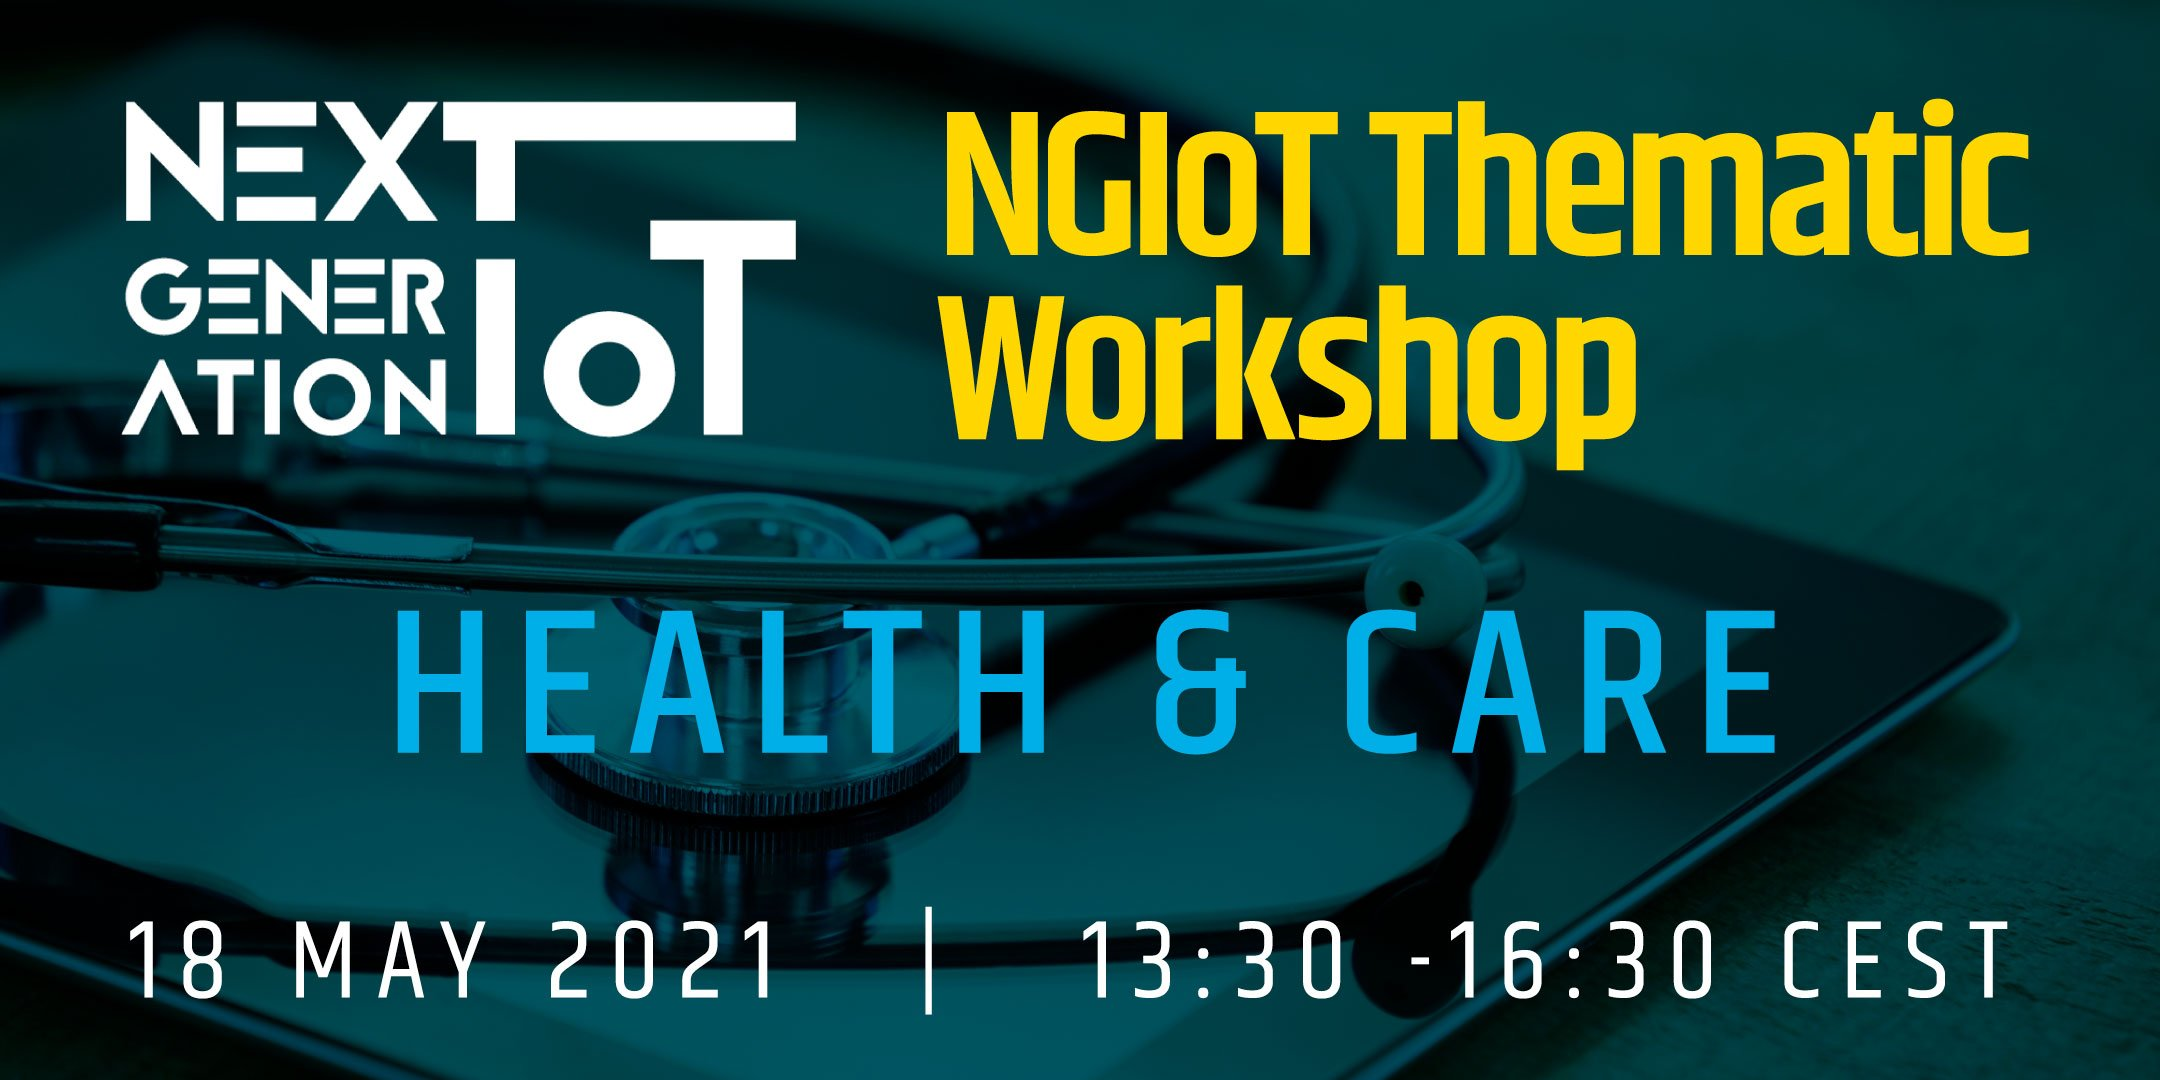 NGIoT Thematic Workshop: Health and Care @ Online